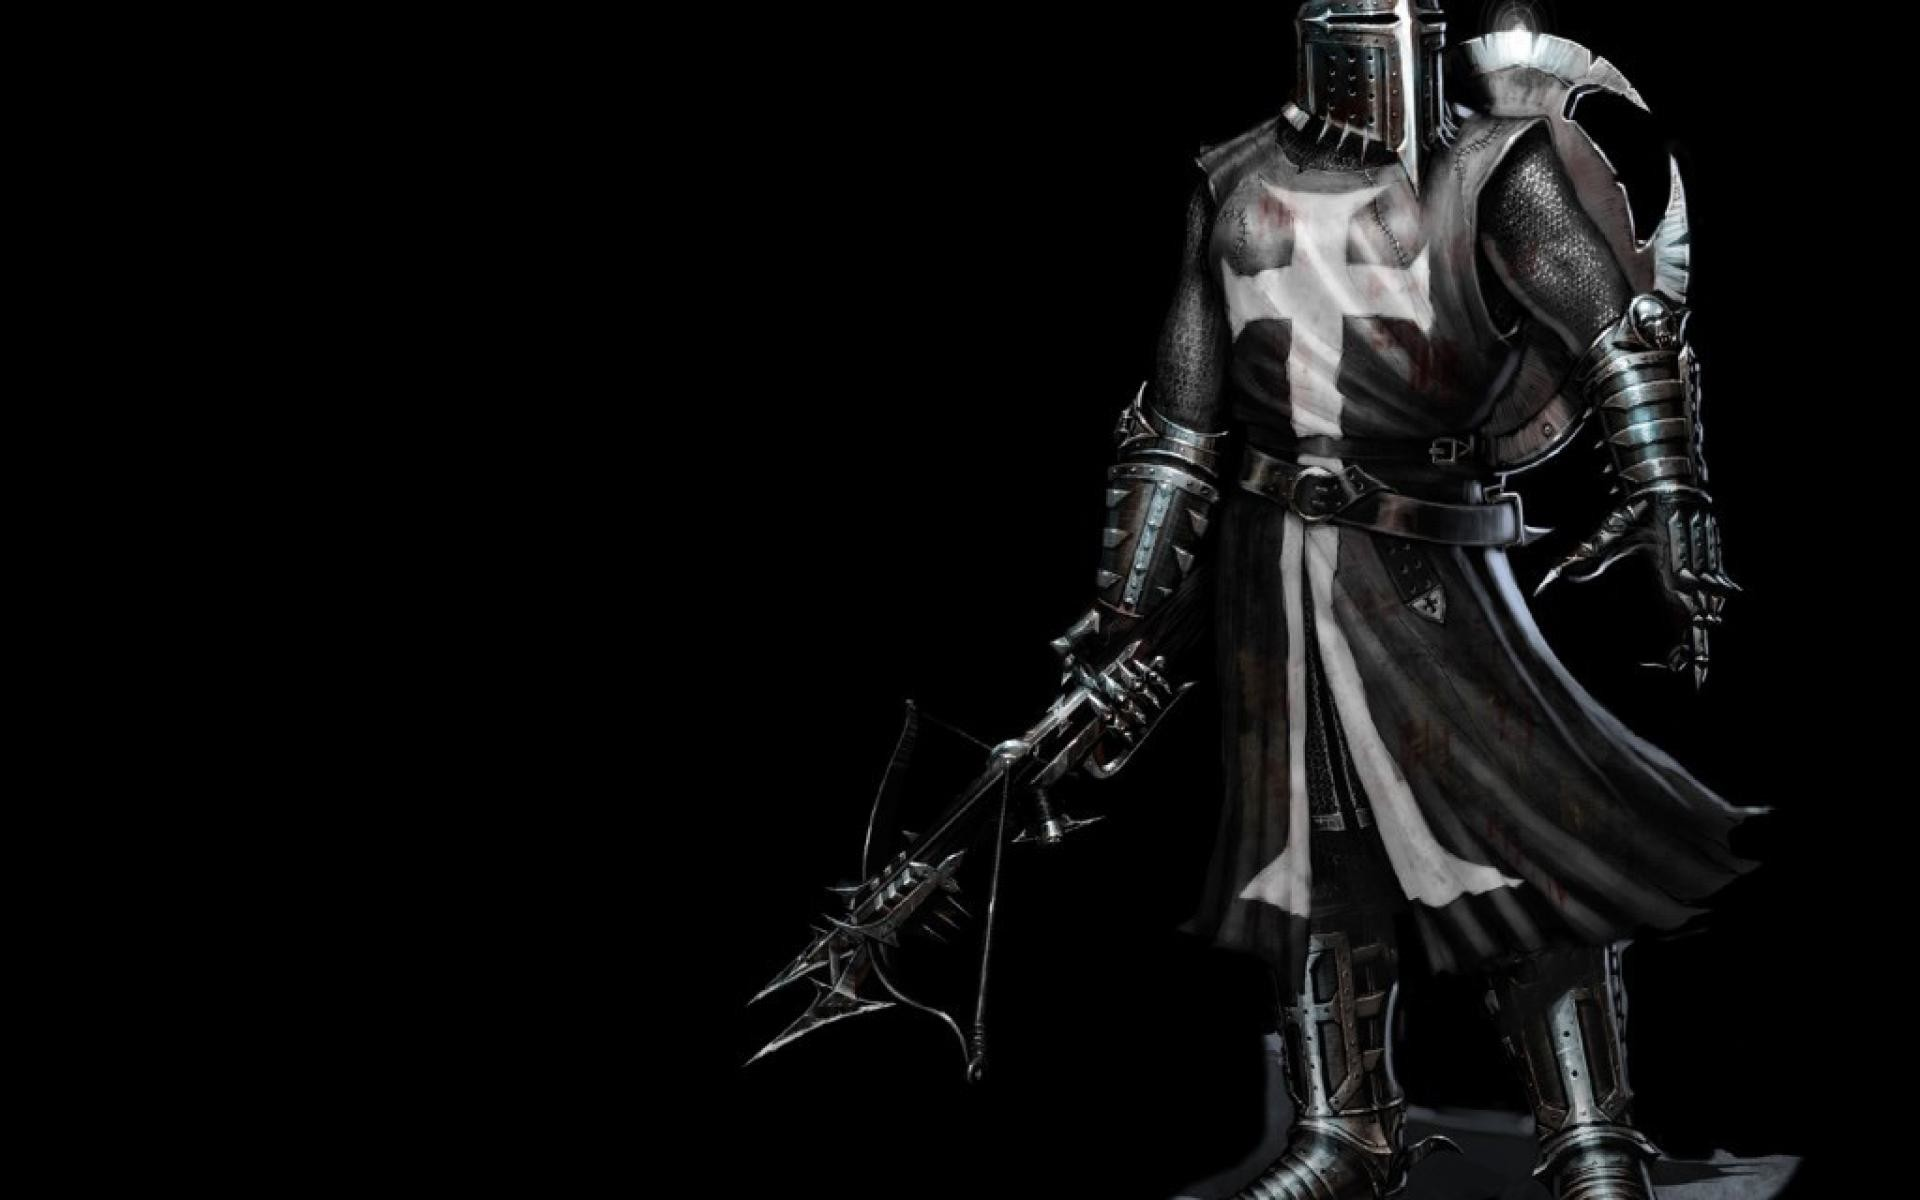 1920x1200 _crusader_warriors_templar_desktop_1024x768_wallpaper-431805.jpg .